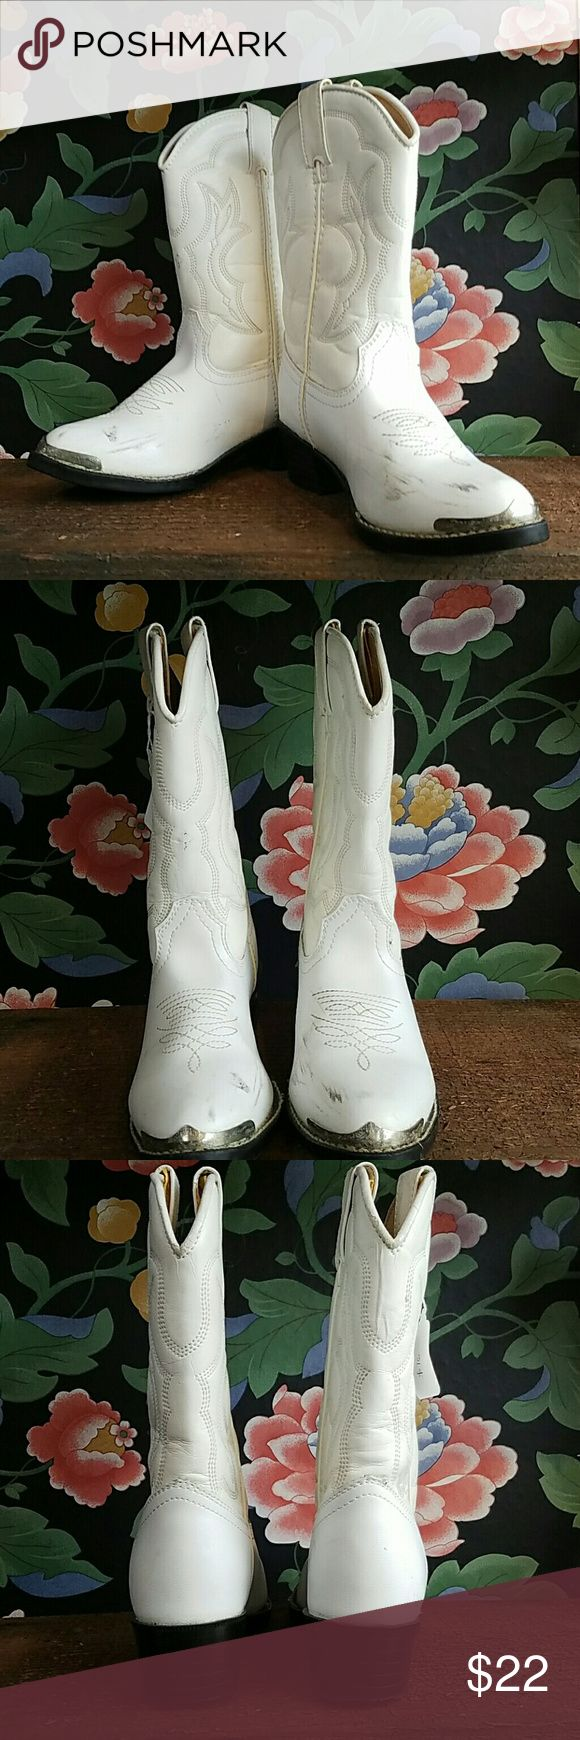 Kids Western Boots Great pair of Durango kids boots. Great condition with some black markings on the toes. Size 12D. Durango Shoes Boots